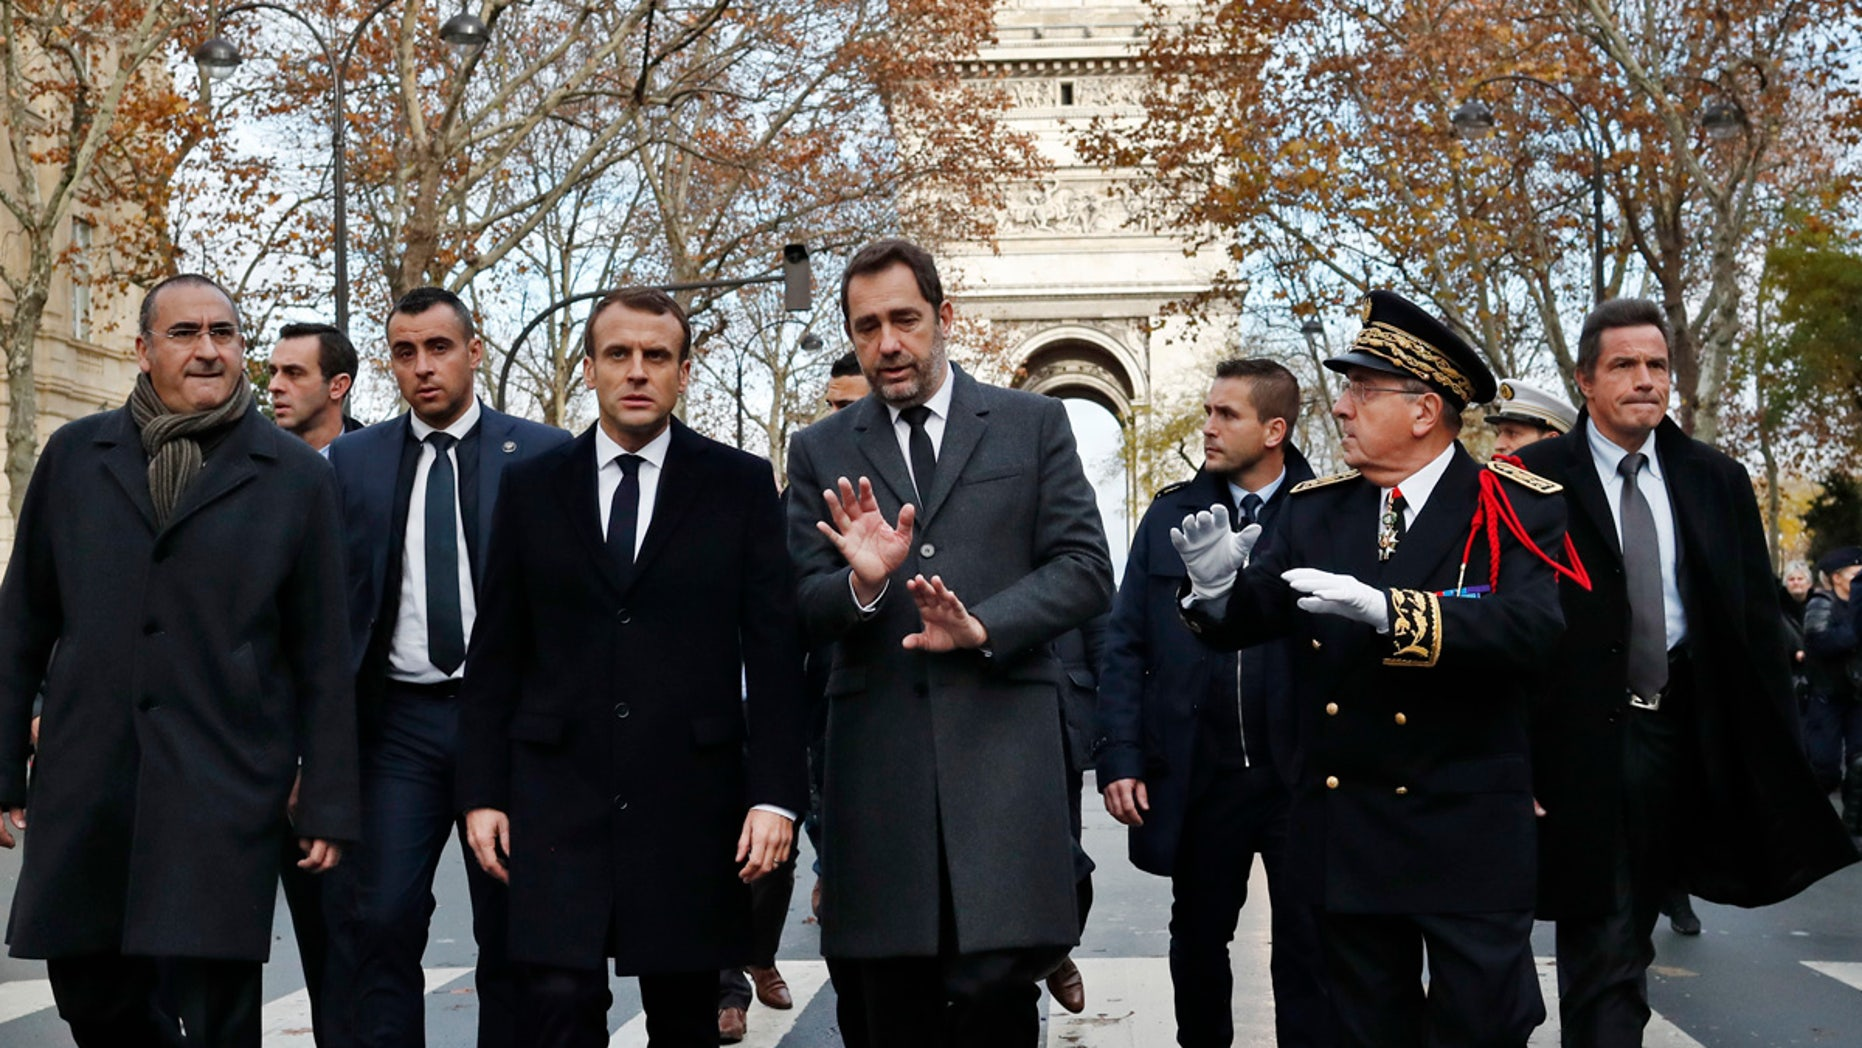 France's President Emmanuel Macron, centre left, France's Interior Minister Christophe Castaner, center, Secretary of State to a Interior Minister Laurent Nunez, left, and Paris military Prefect Michel Delpuech, right, arrive to revisit firefighters and proof military officers a day after a demonstration, in Paris, Sunday, Dec. 2, 2018. (AP Photo/Thibault Camus)